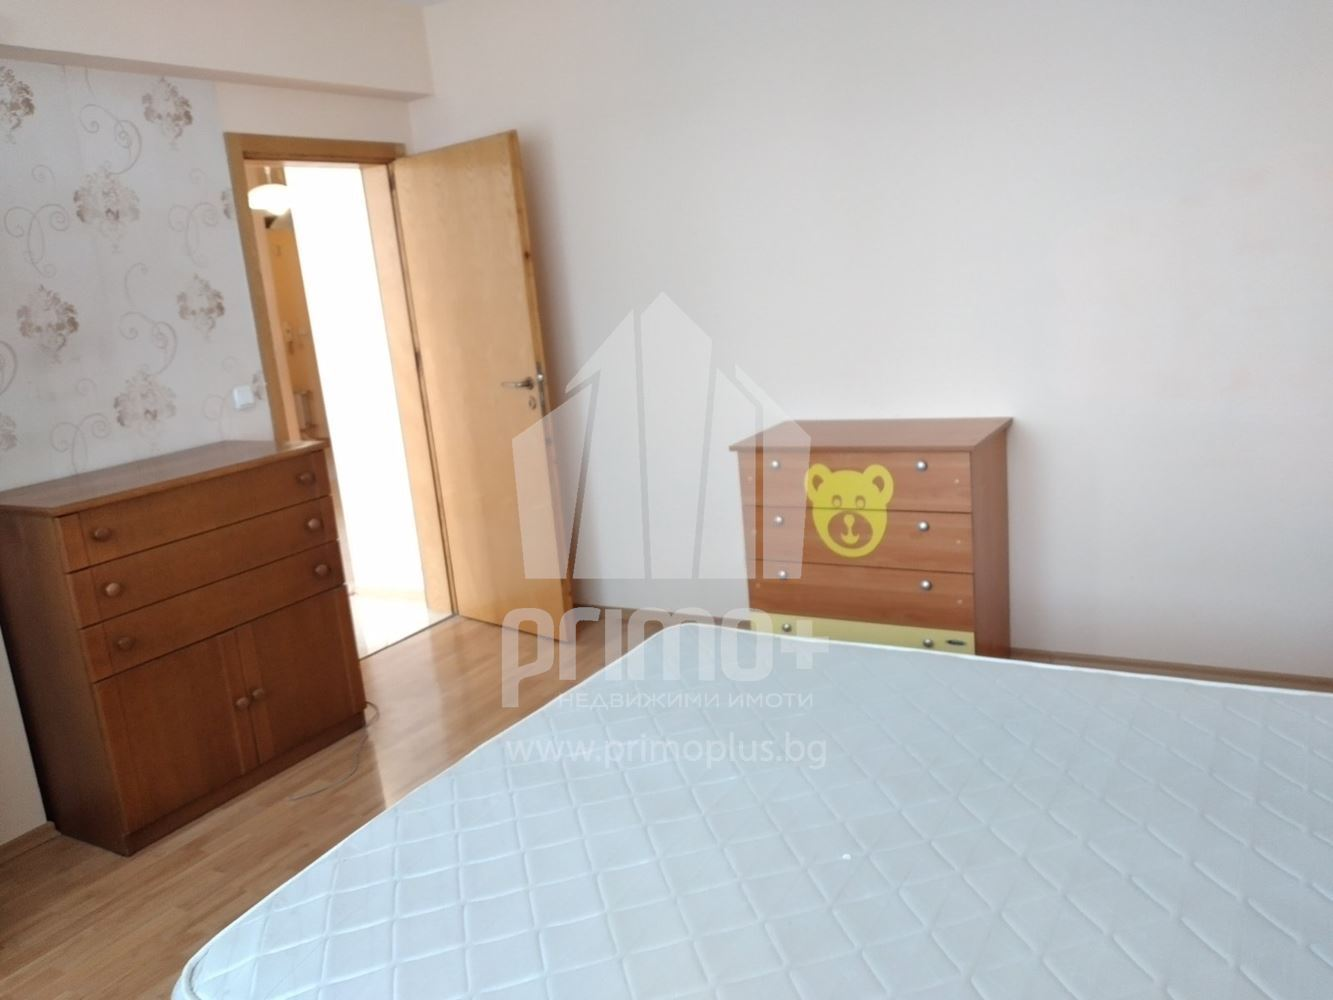 For Rent, 3-bedroom, Manastirski Livadi, Sofia, Bedrooms, ,For Rent,4